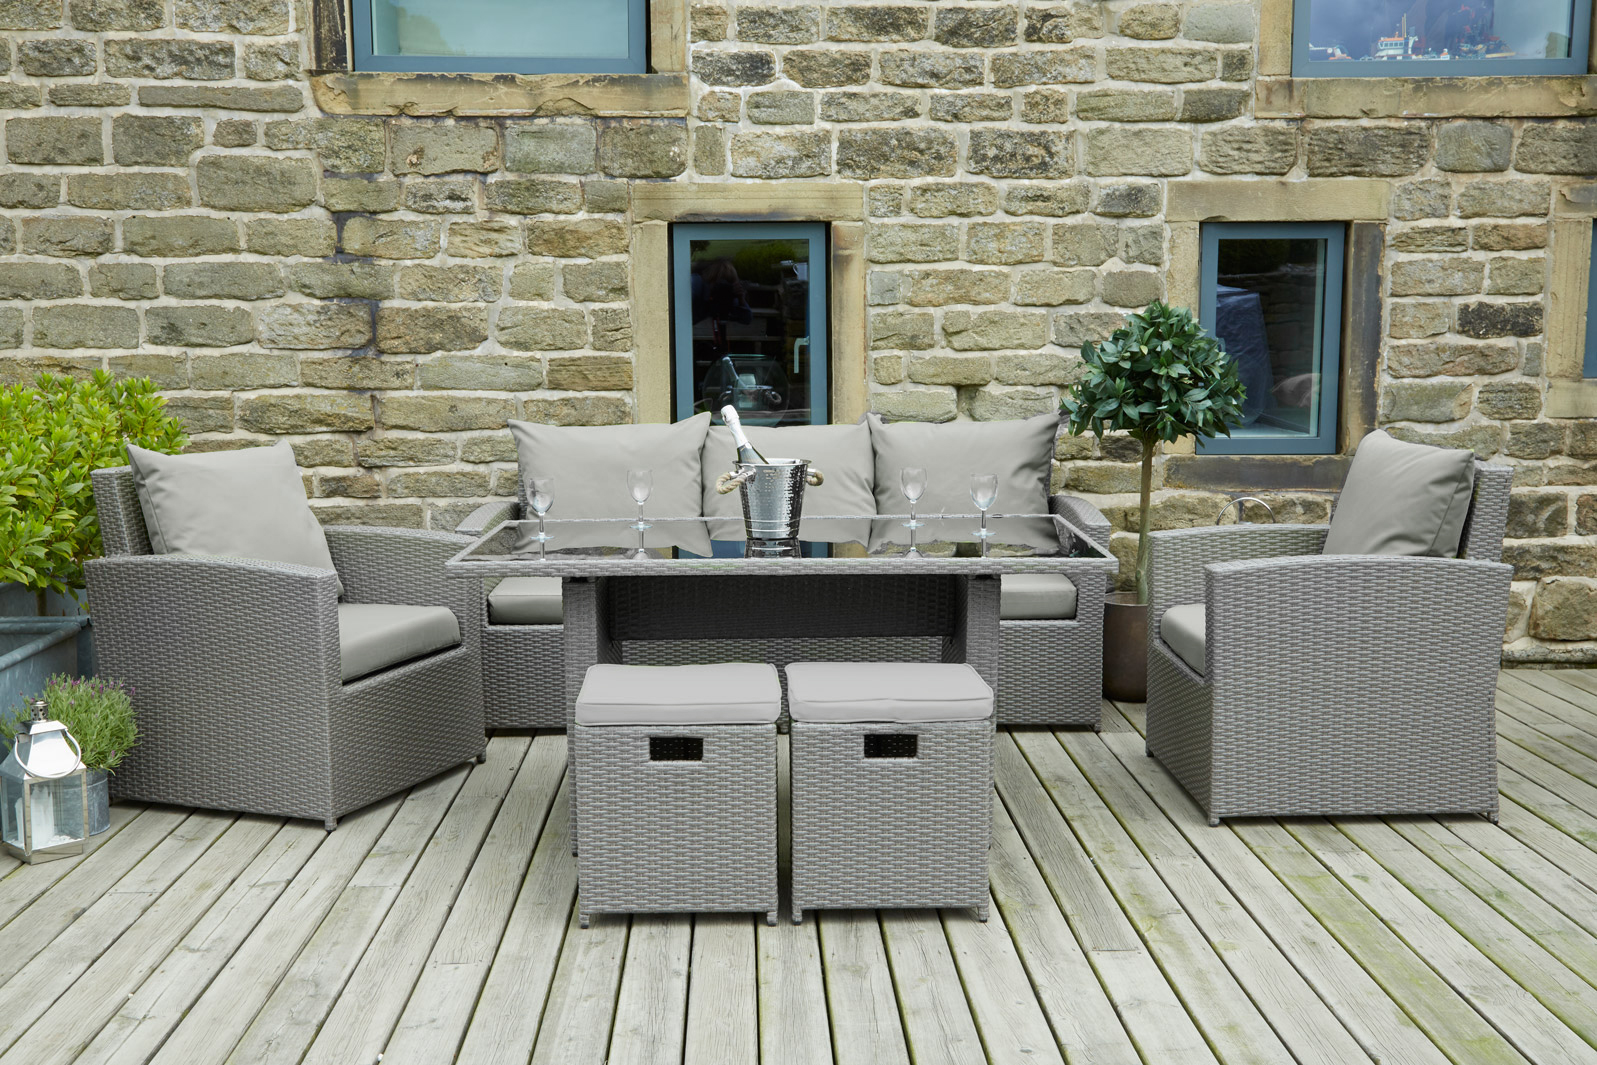 https://www.firstfurniture.co.uk/pub/media/catalog/product/1/8/18-127-mg.jpg